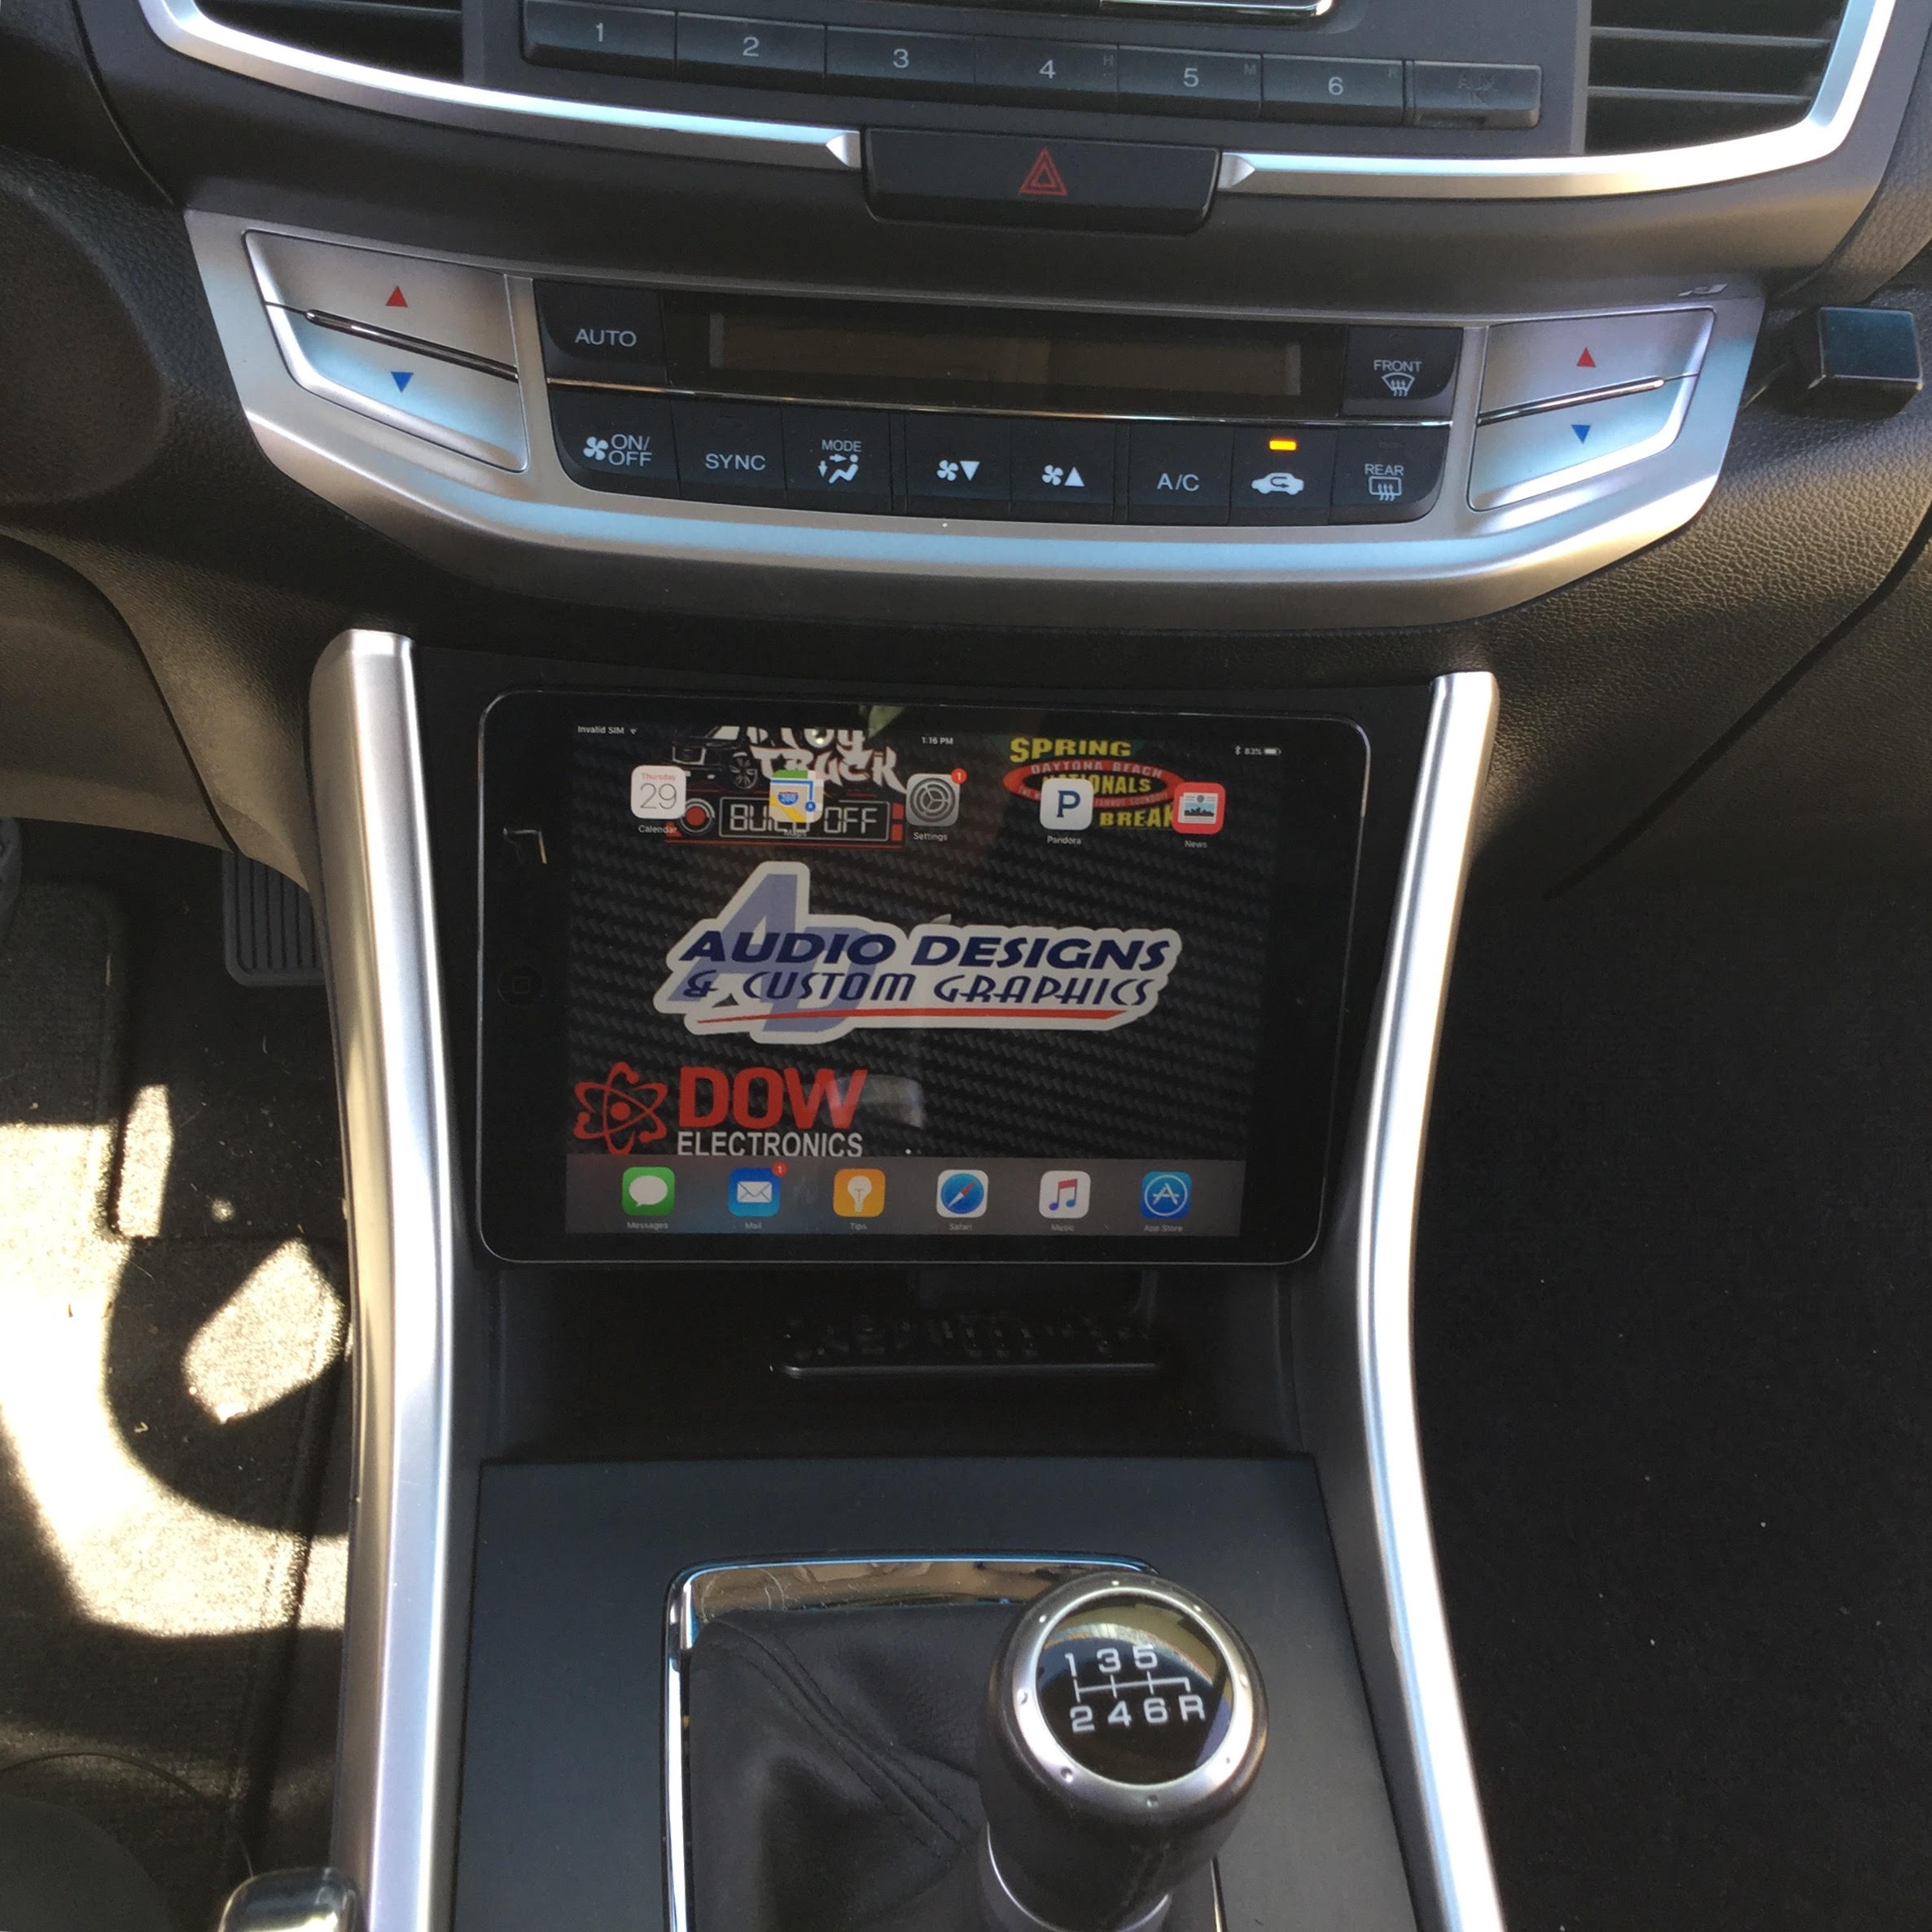 Honda Accord 2015 Pictures: 13-17 Honda Accord IPad Mini/Nexus 7 Dash Kit